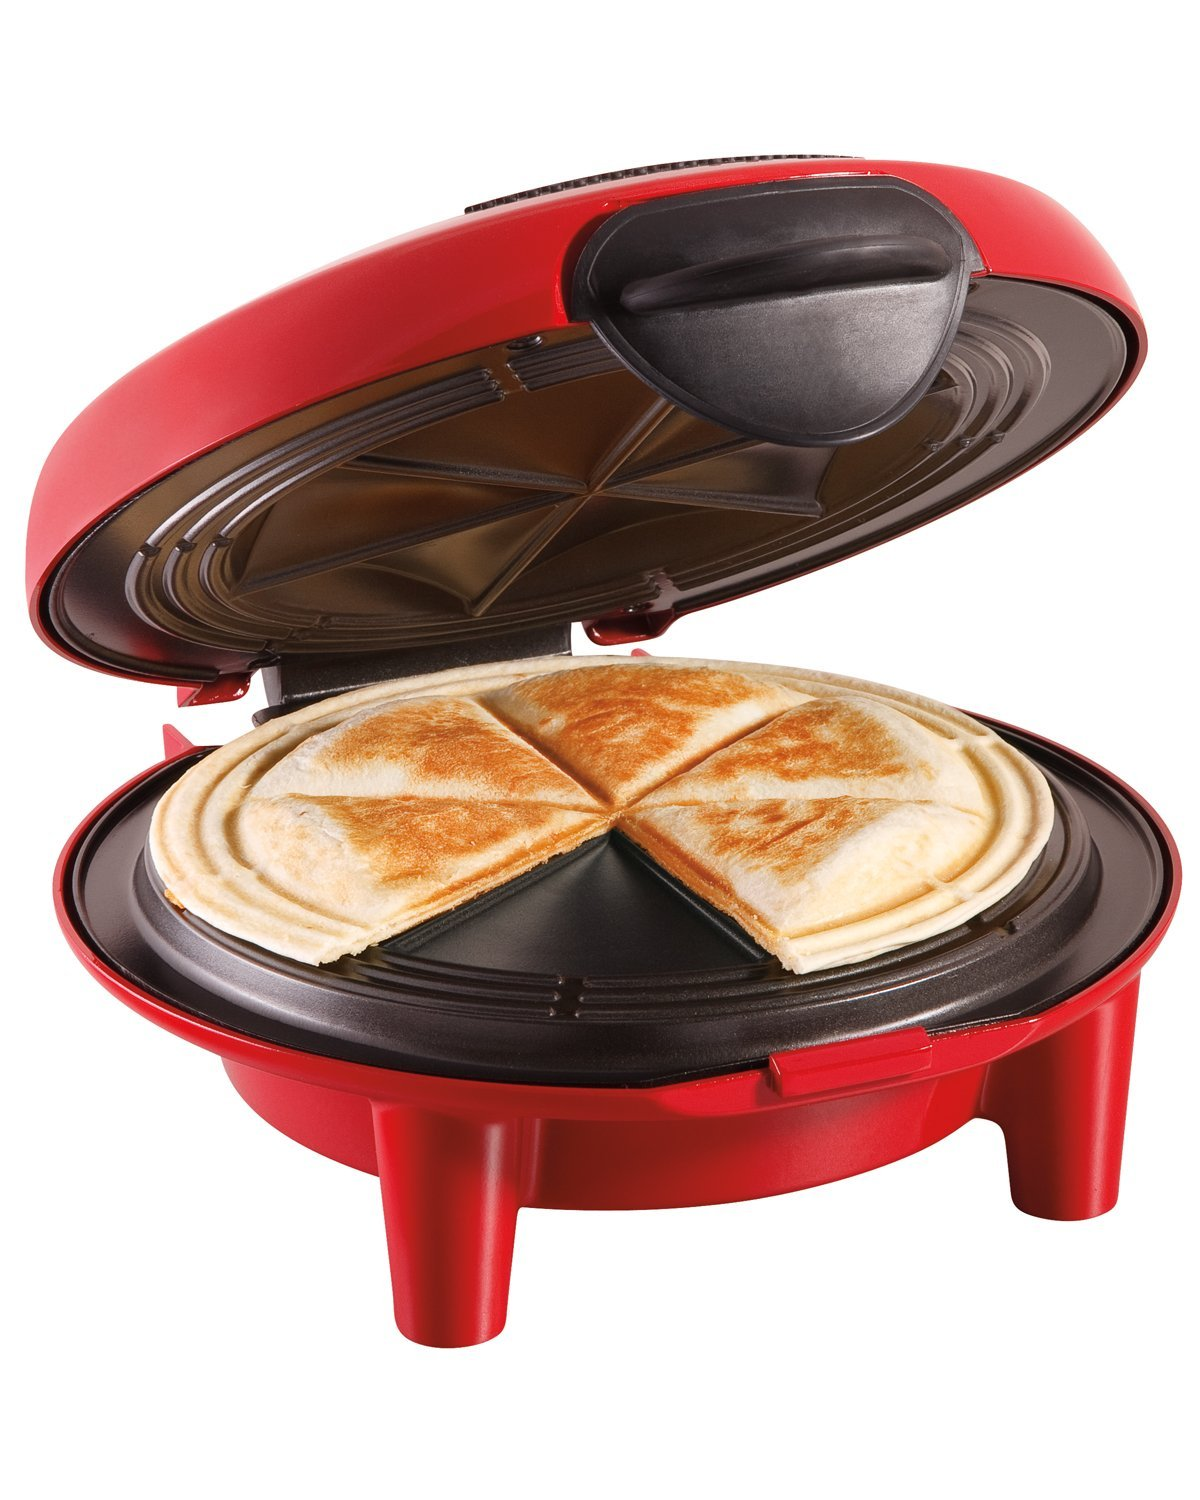 Hamilton Beach Electric Quesadilla Maker